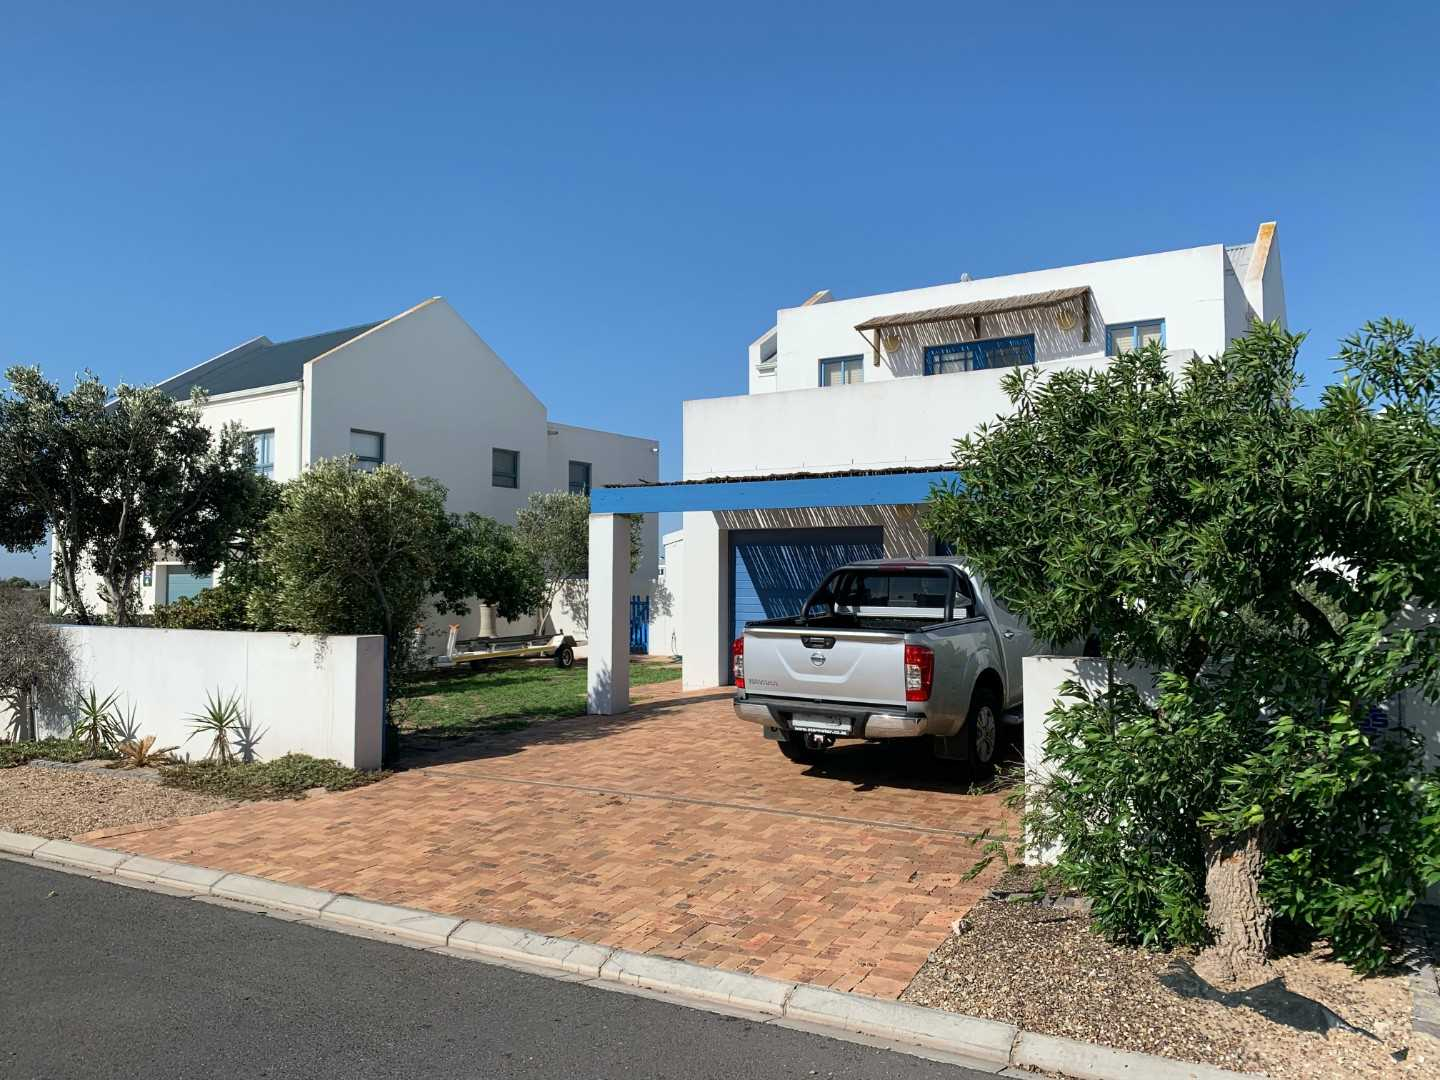 3 Bed, 3 Bath & large private garden